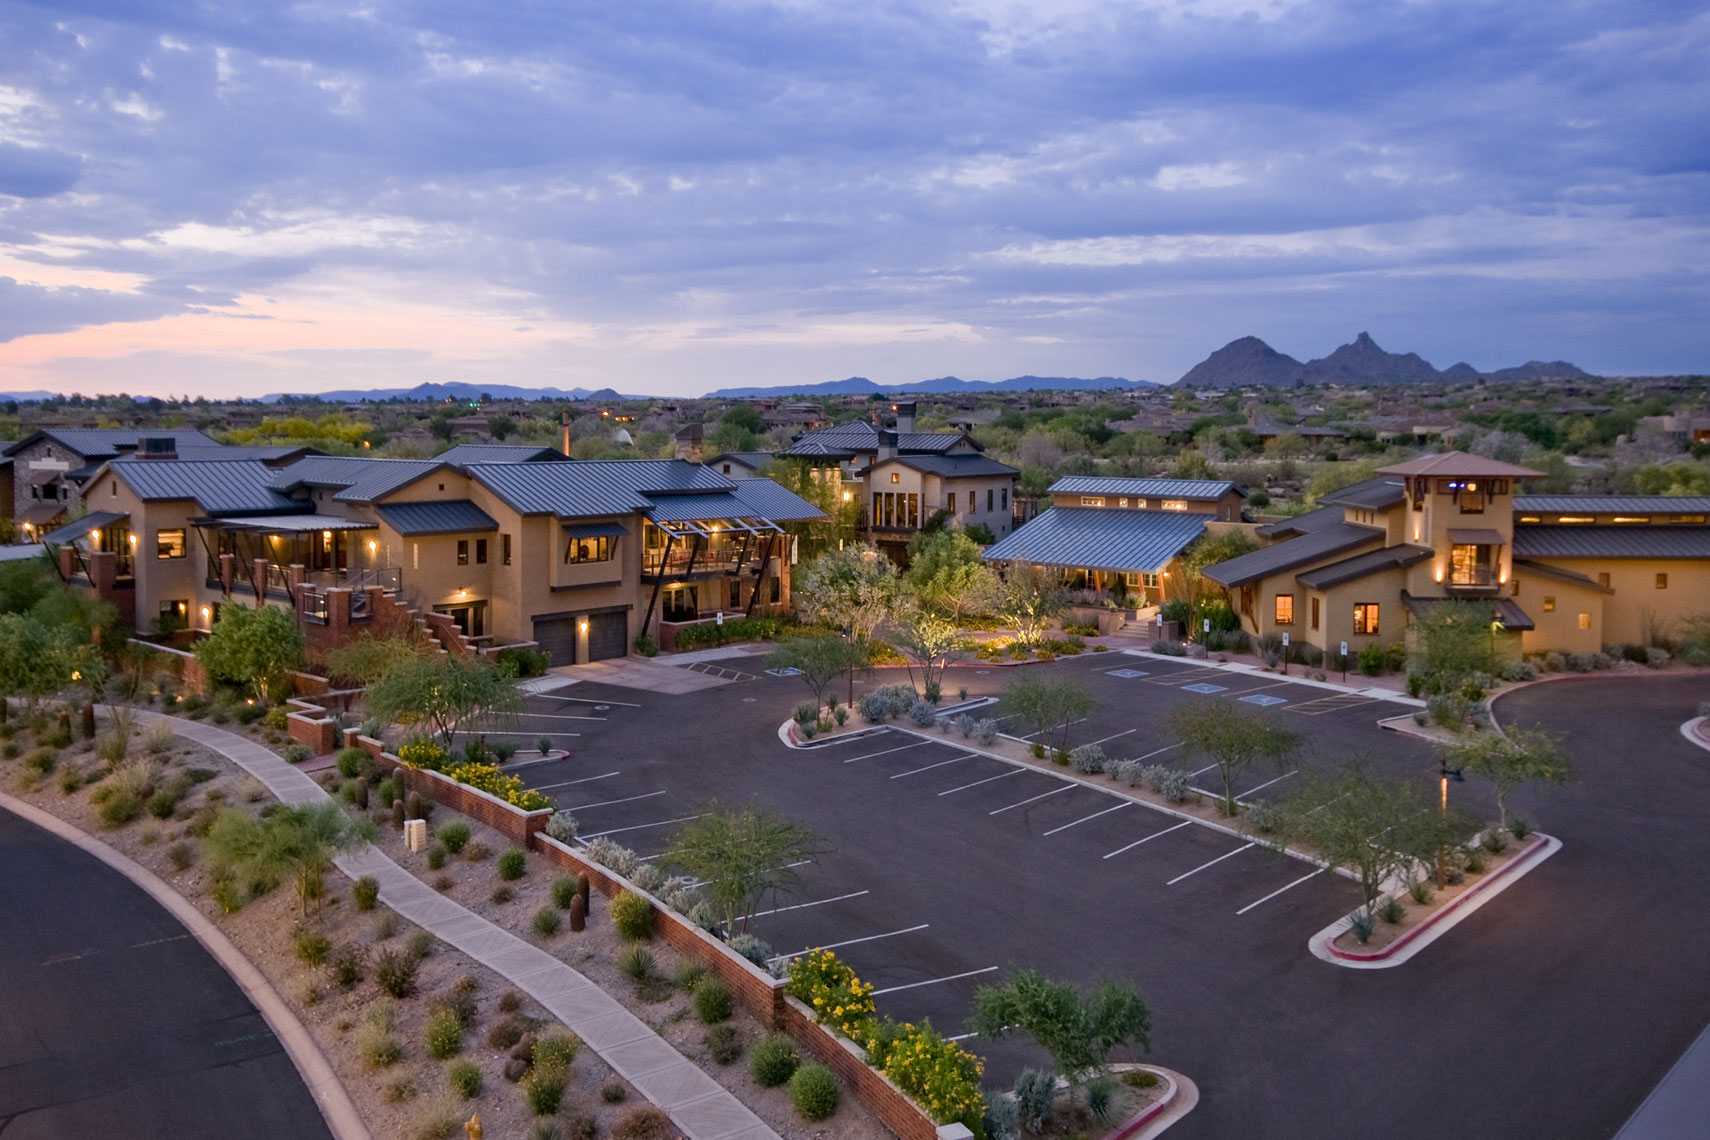 Mixed Use Architecture | Phoenix Arizona | Dale Gardon Design